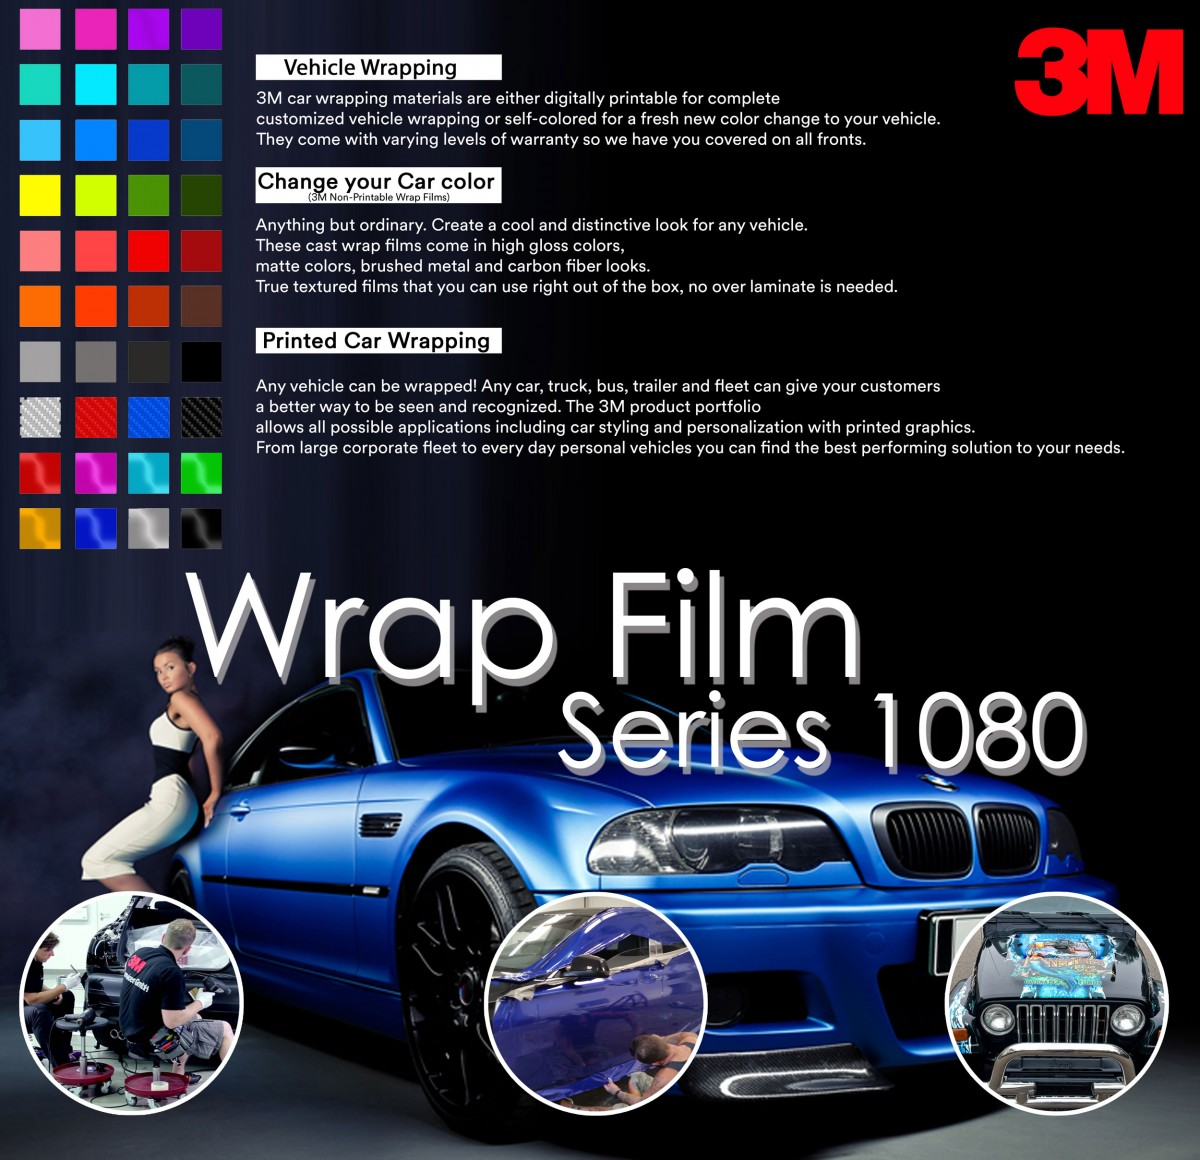 Car Care Center >> 3M Car Wrapping | Al Sayegh Auto Repairs UAE